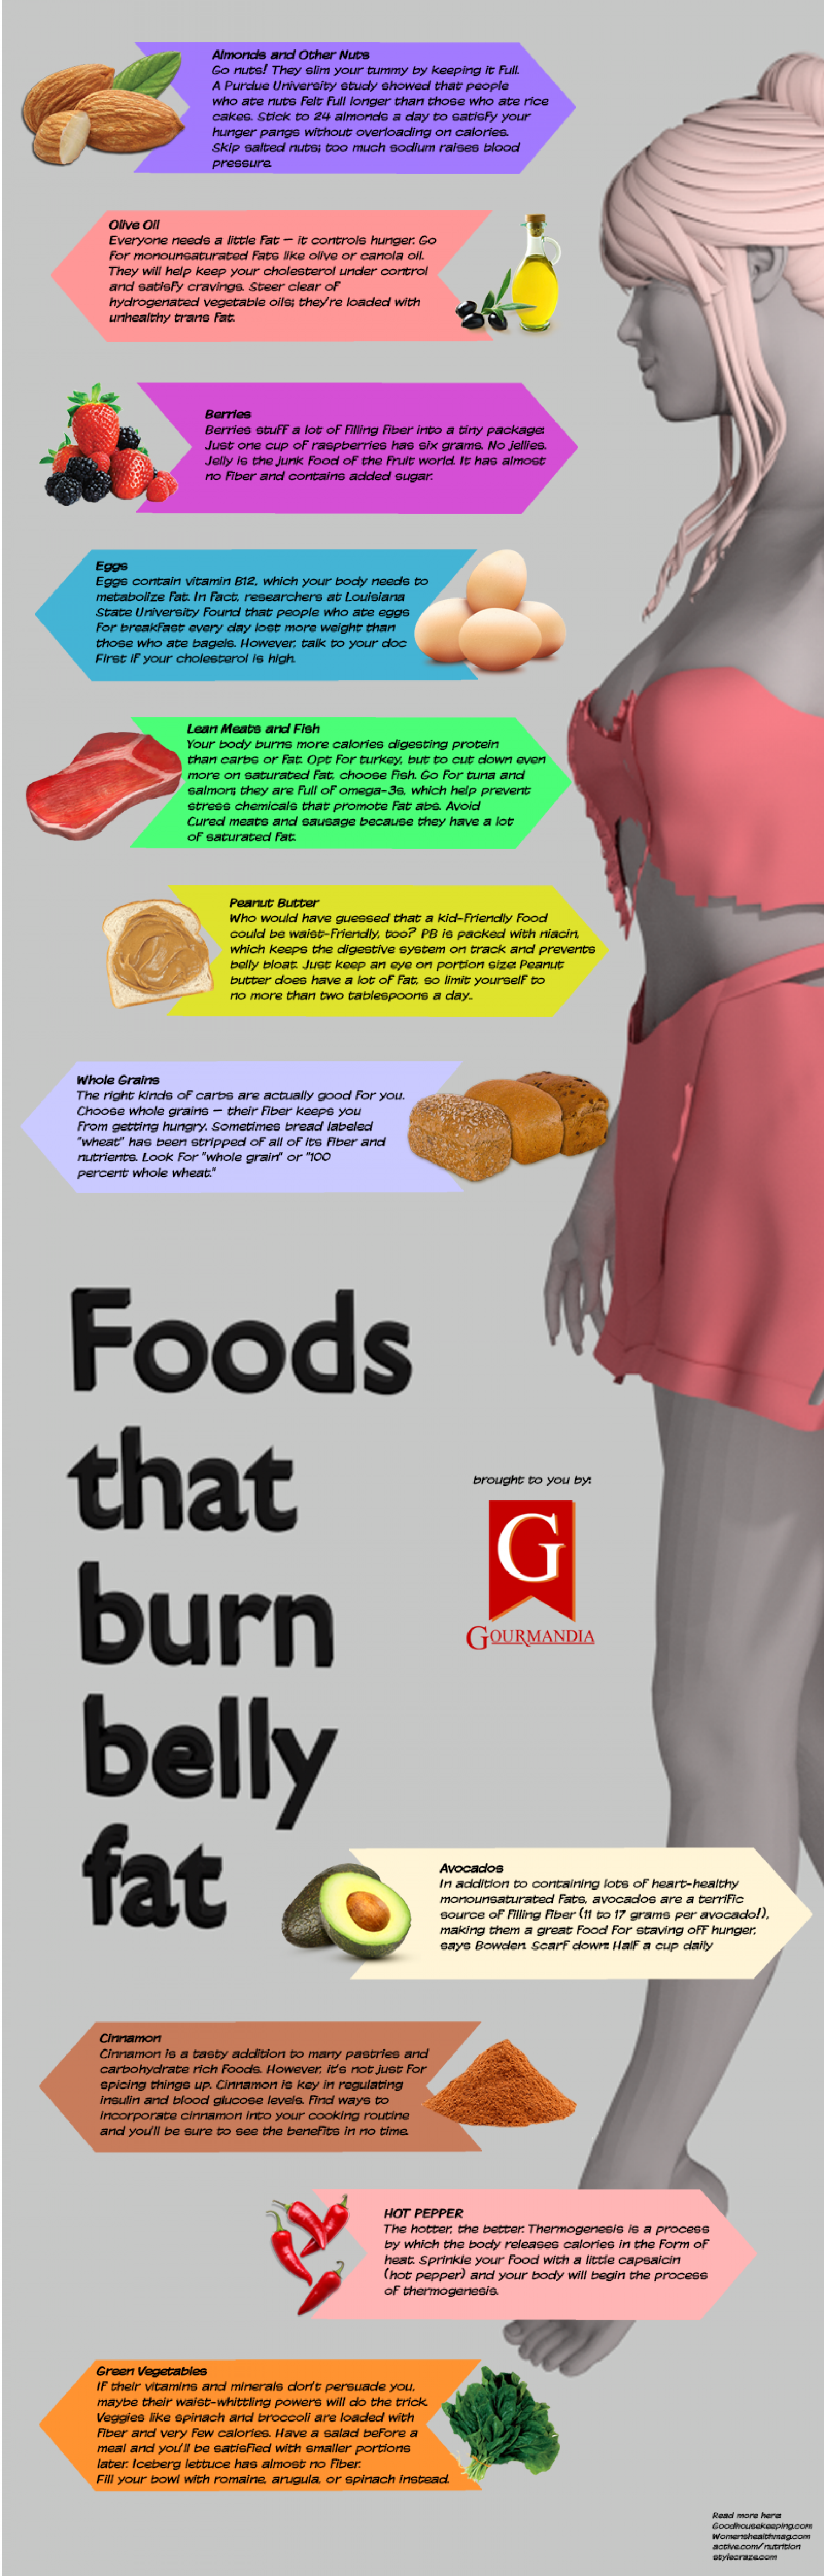 Foods that Burn Belly Fat Infographic